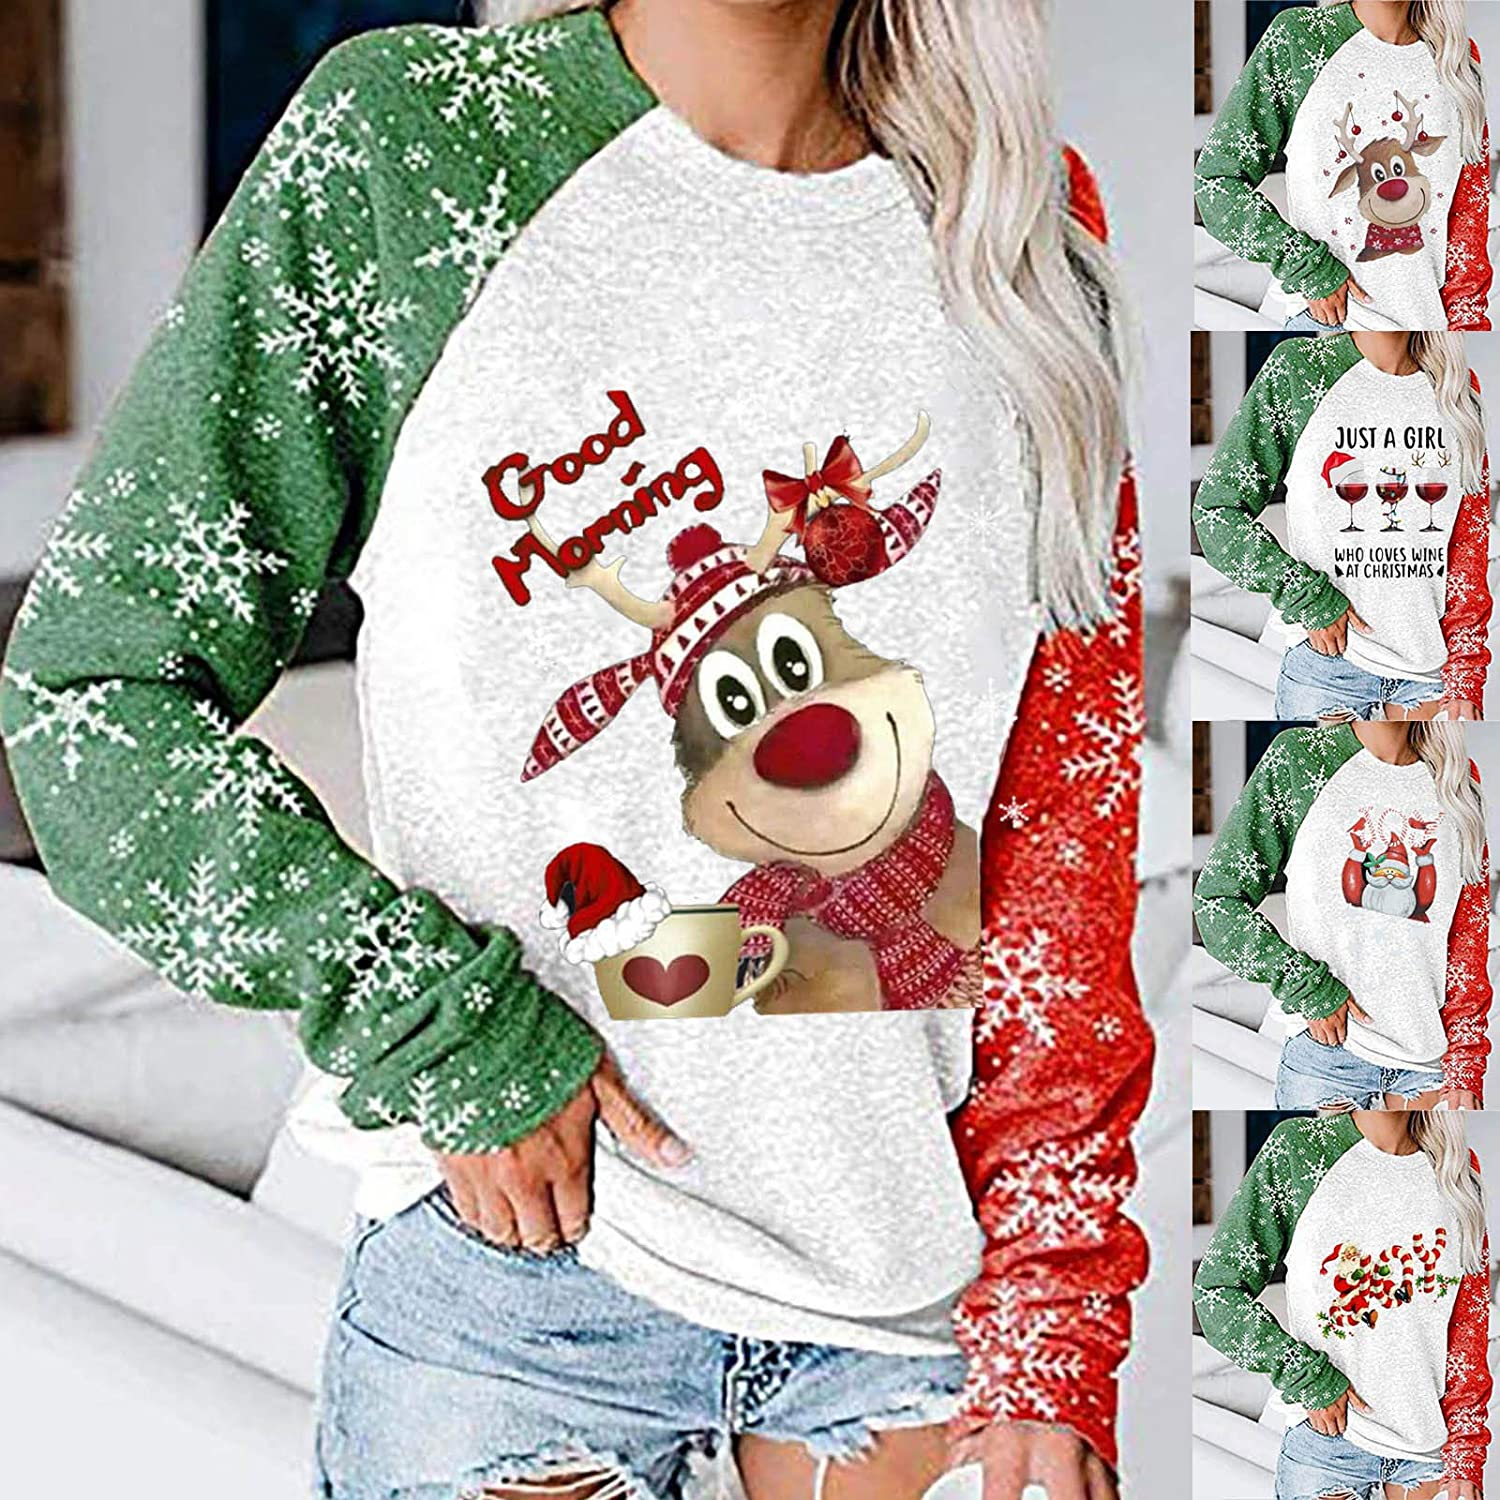 Fudule Womens Crewneck Sweatshirt Casual Long Sleeve Pullover Tops Chrismtas Graphic Shirts Lightweight Fall Blouses Top